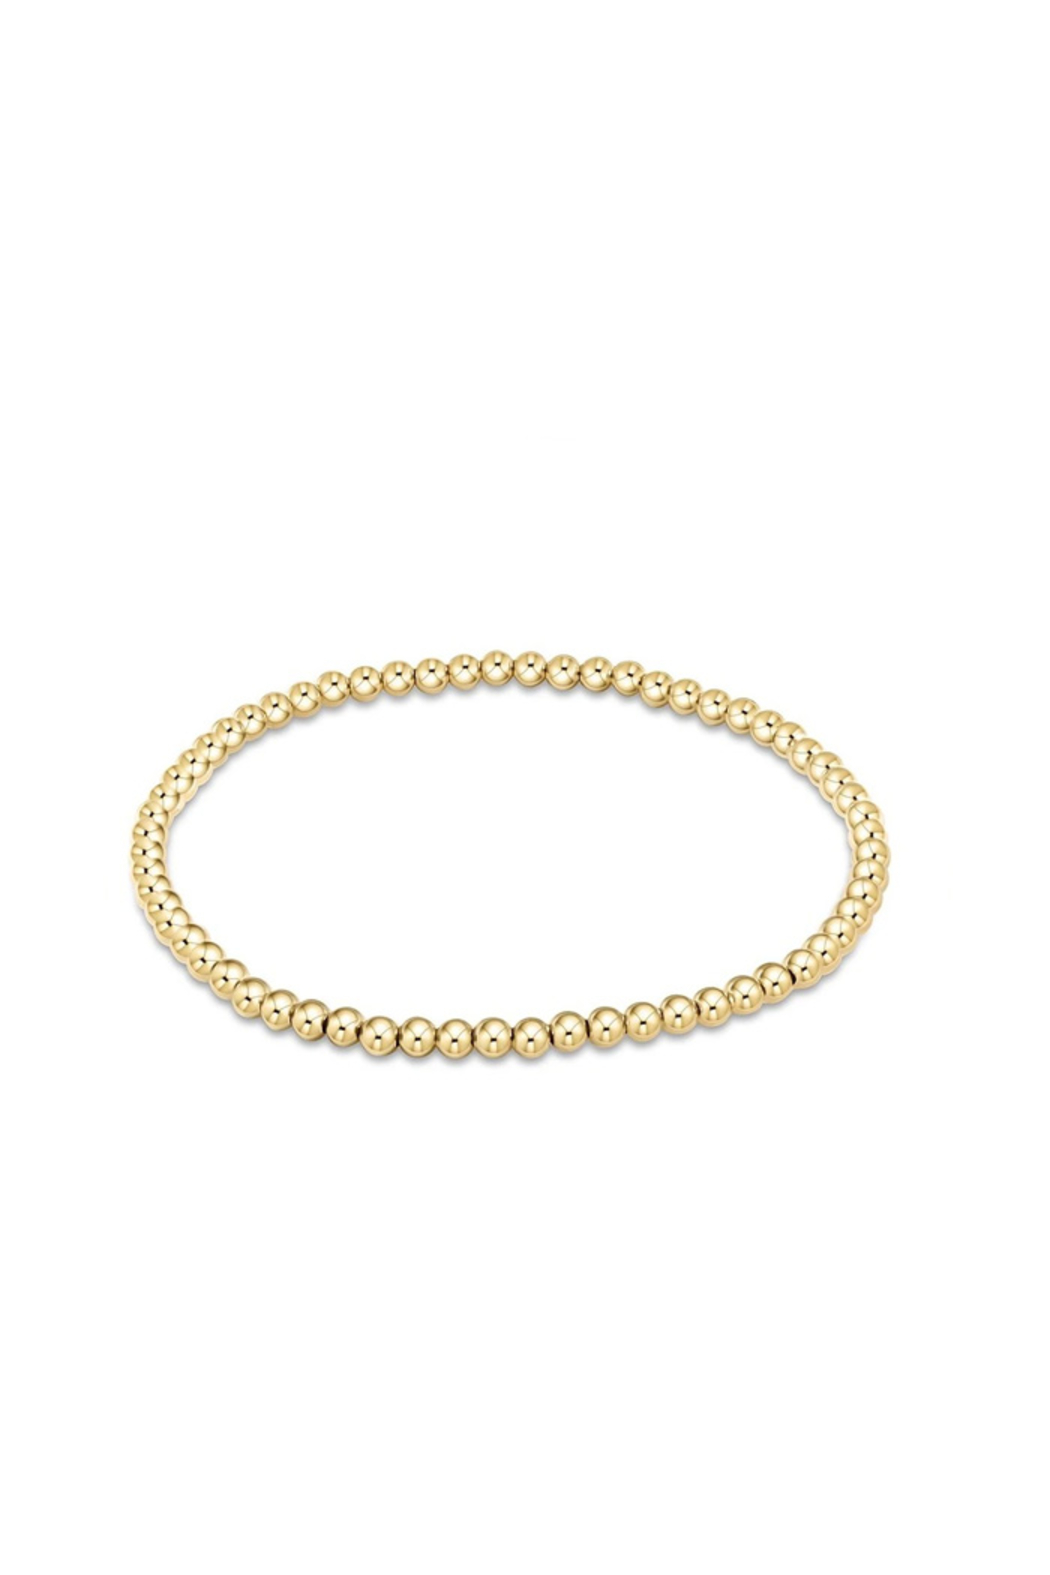 enewton designs Classic Gold 3mm Bead Bracelet - Front Cropped Image